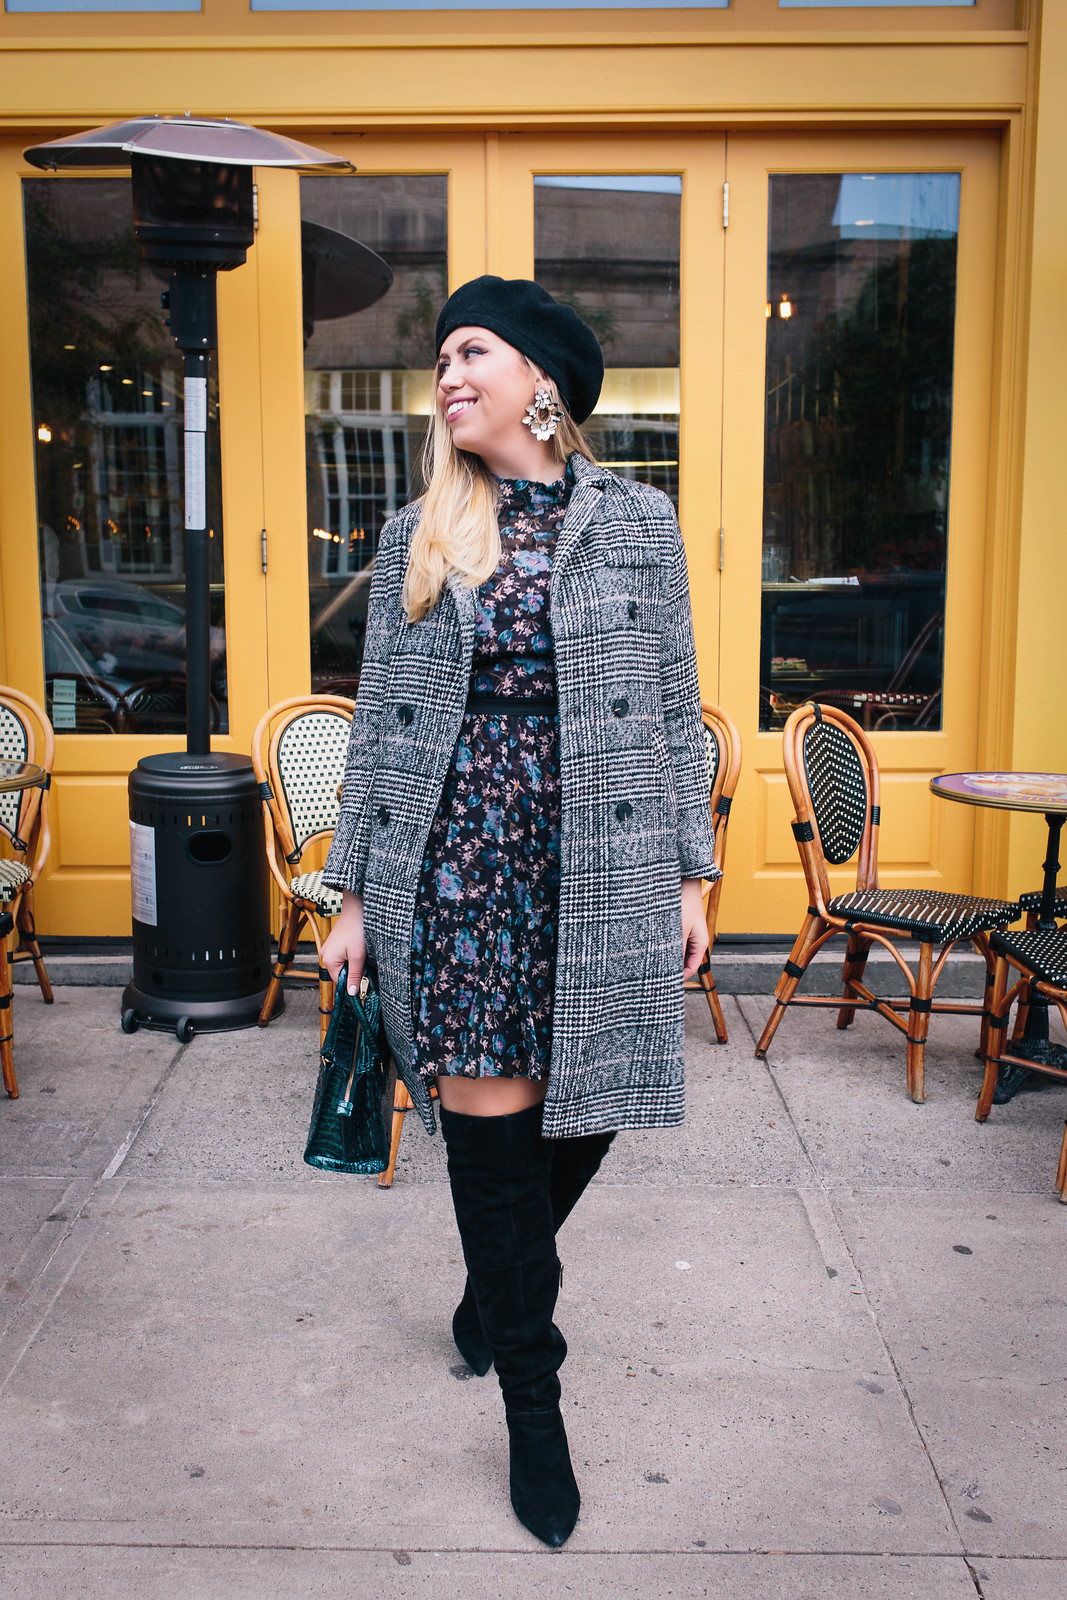 My Favorite Non-Traditional Holiday Outfit | Rebecca Taylor Solstice Silk Blend Dress Black Suede OTK Boots